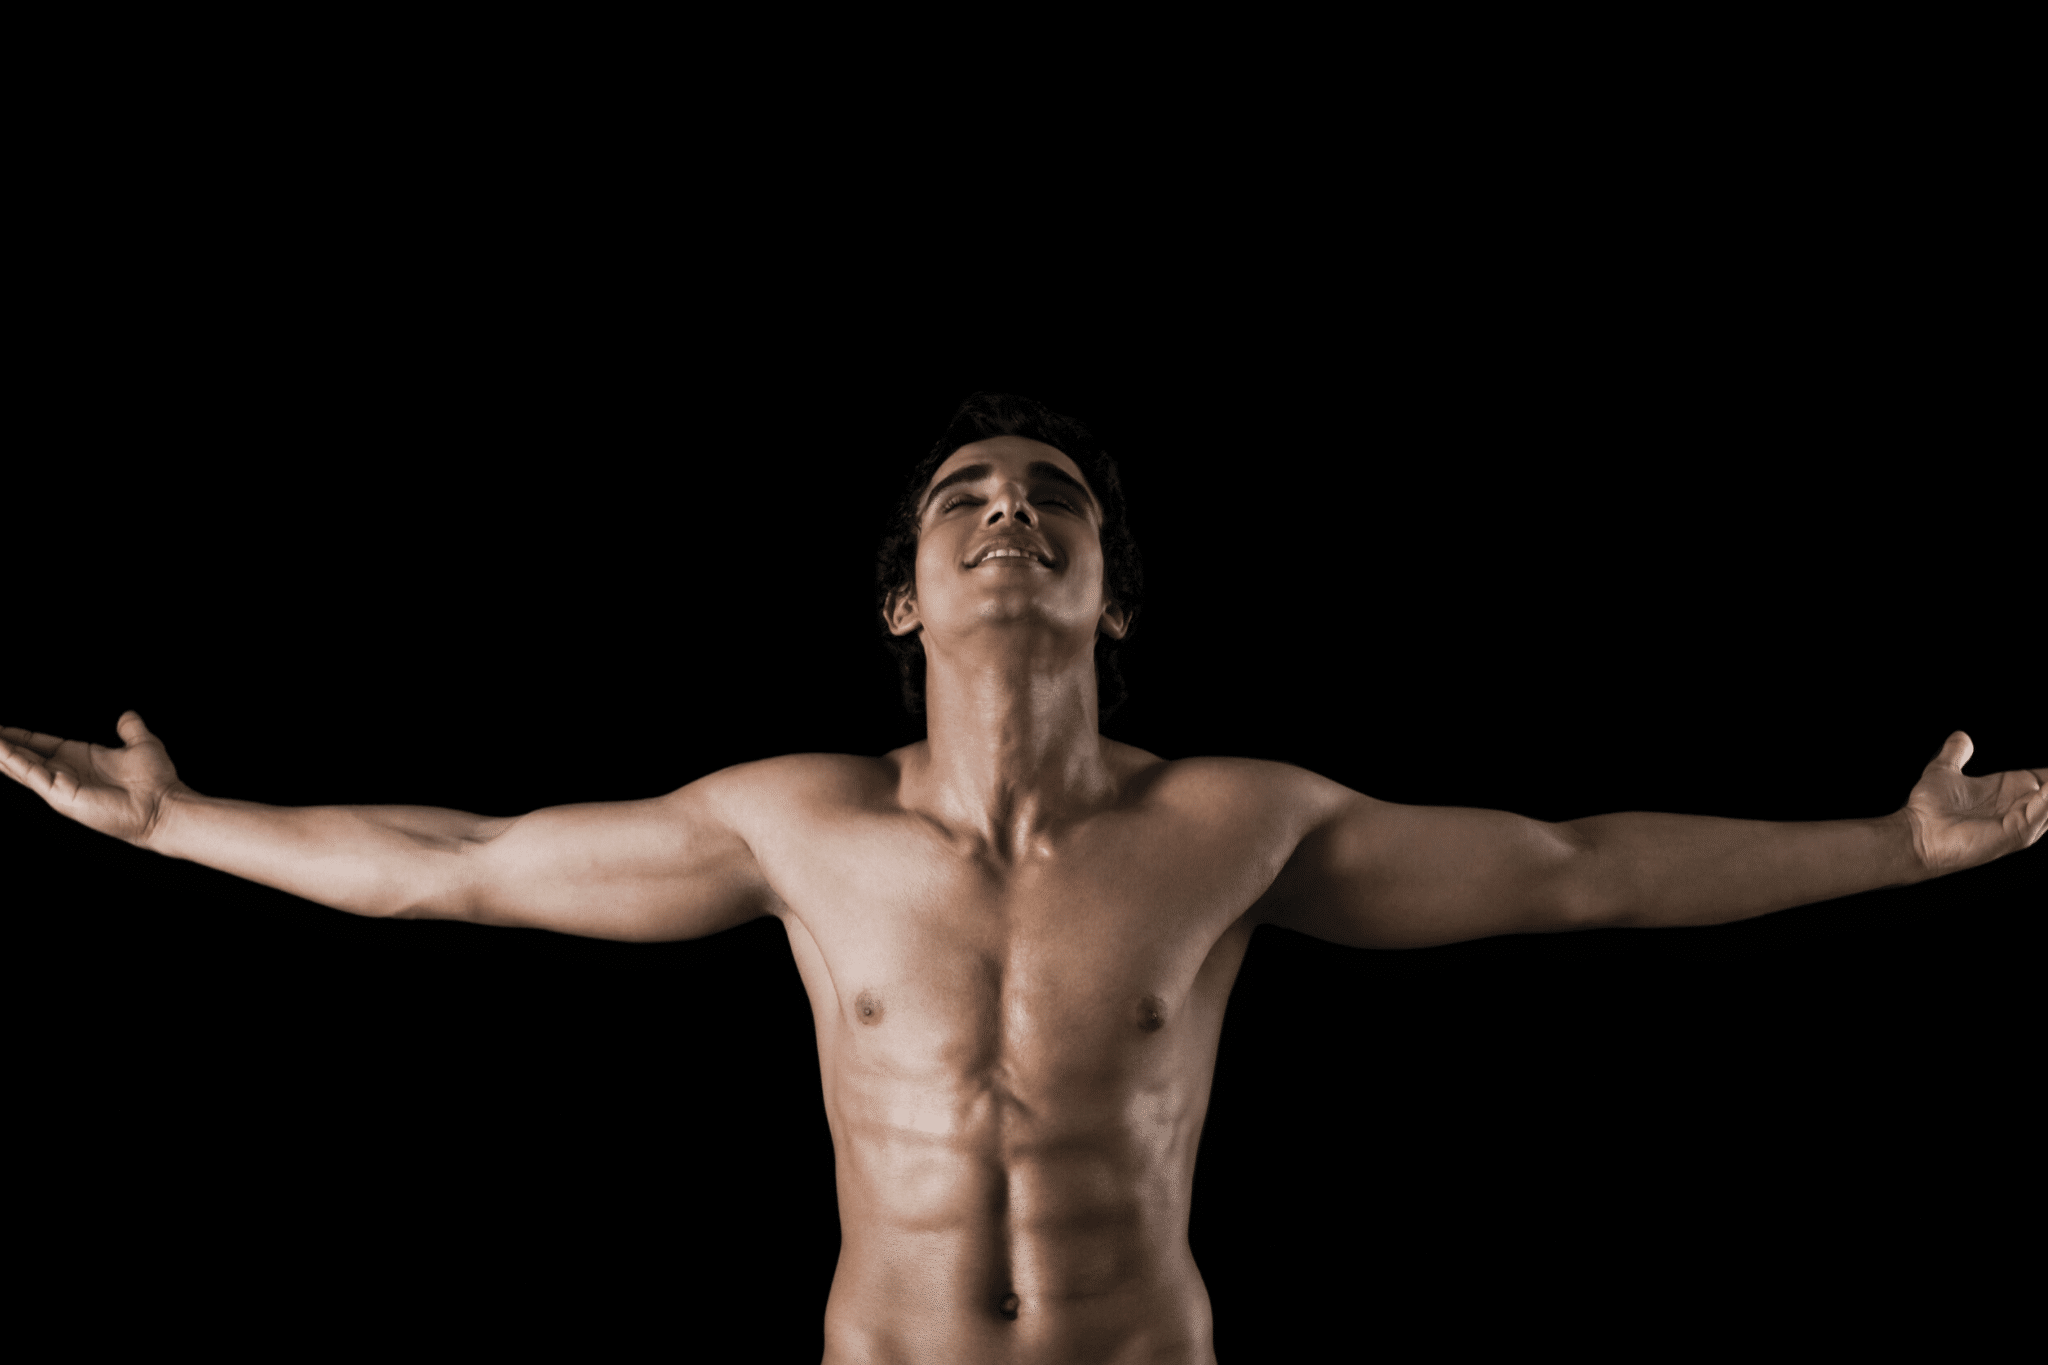 Topless person standing with arms wide open on black background.